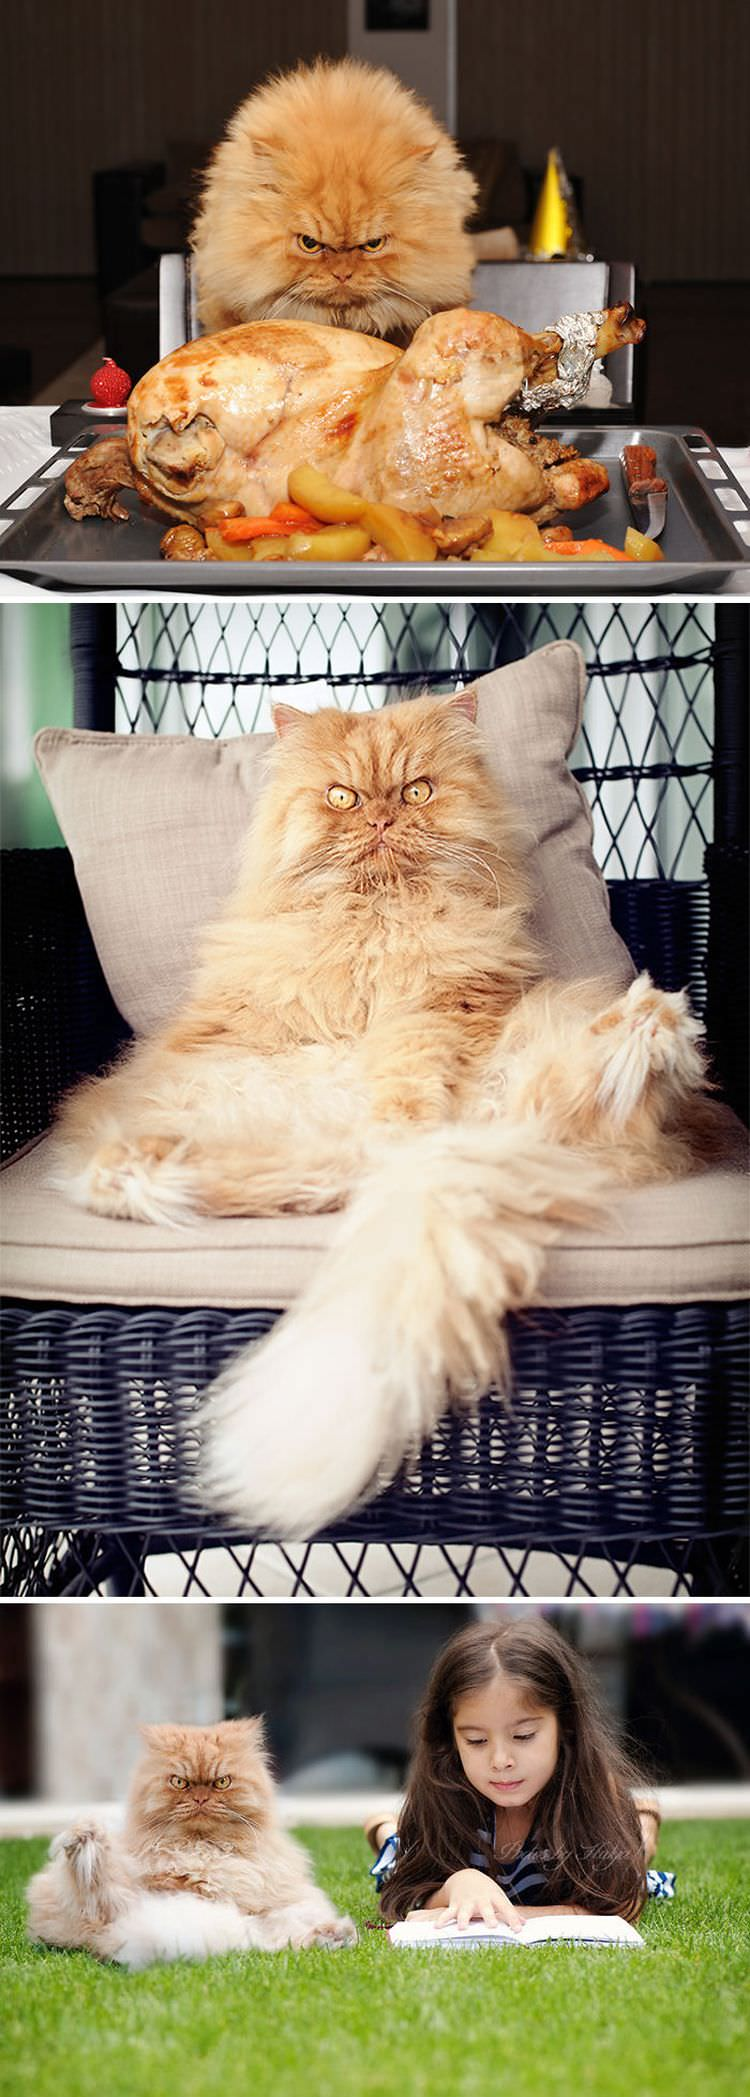 Download Adorable Cat Pictures Photos Images aDe-M4m18